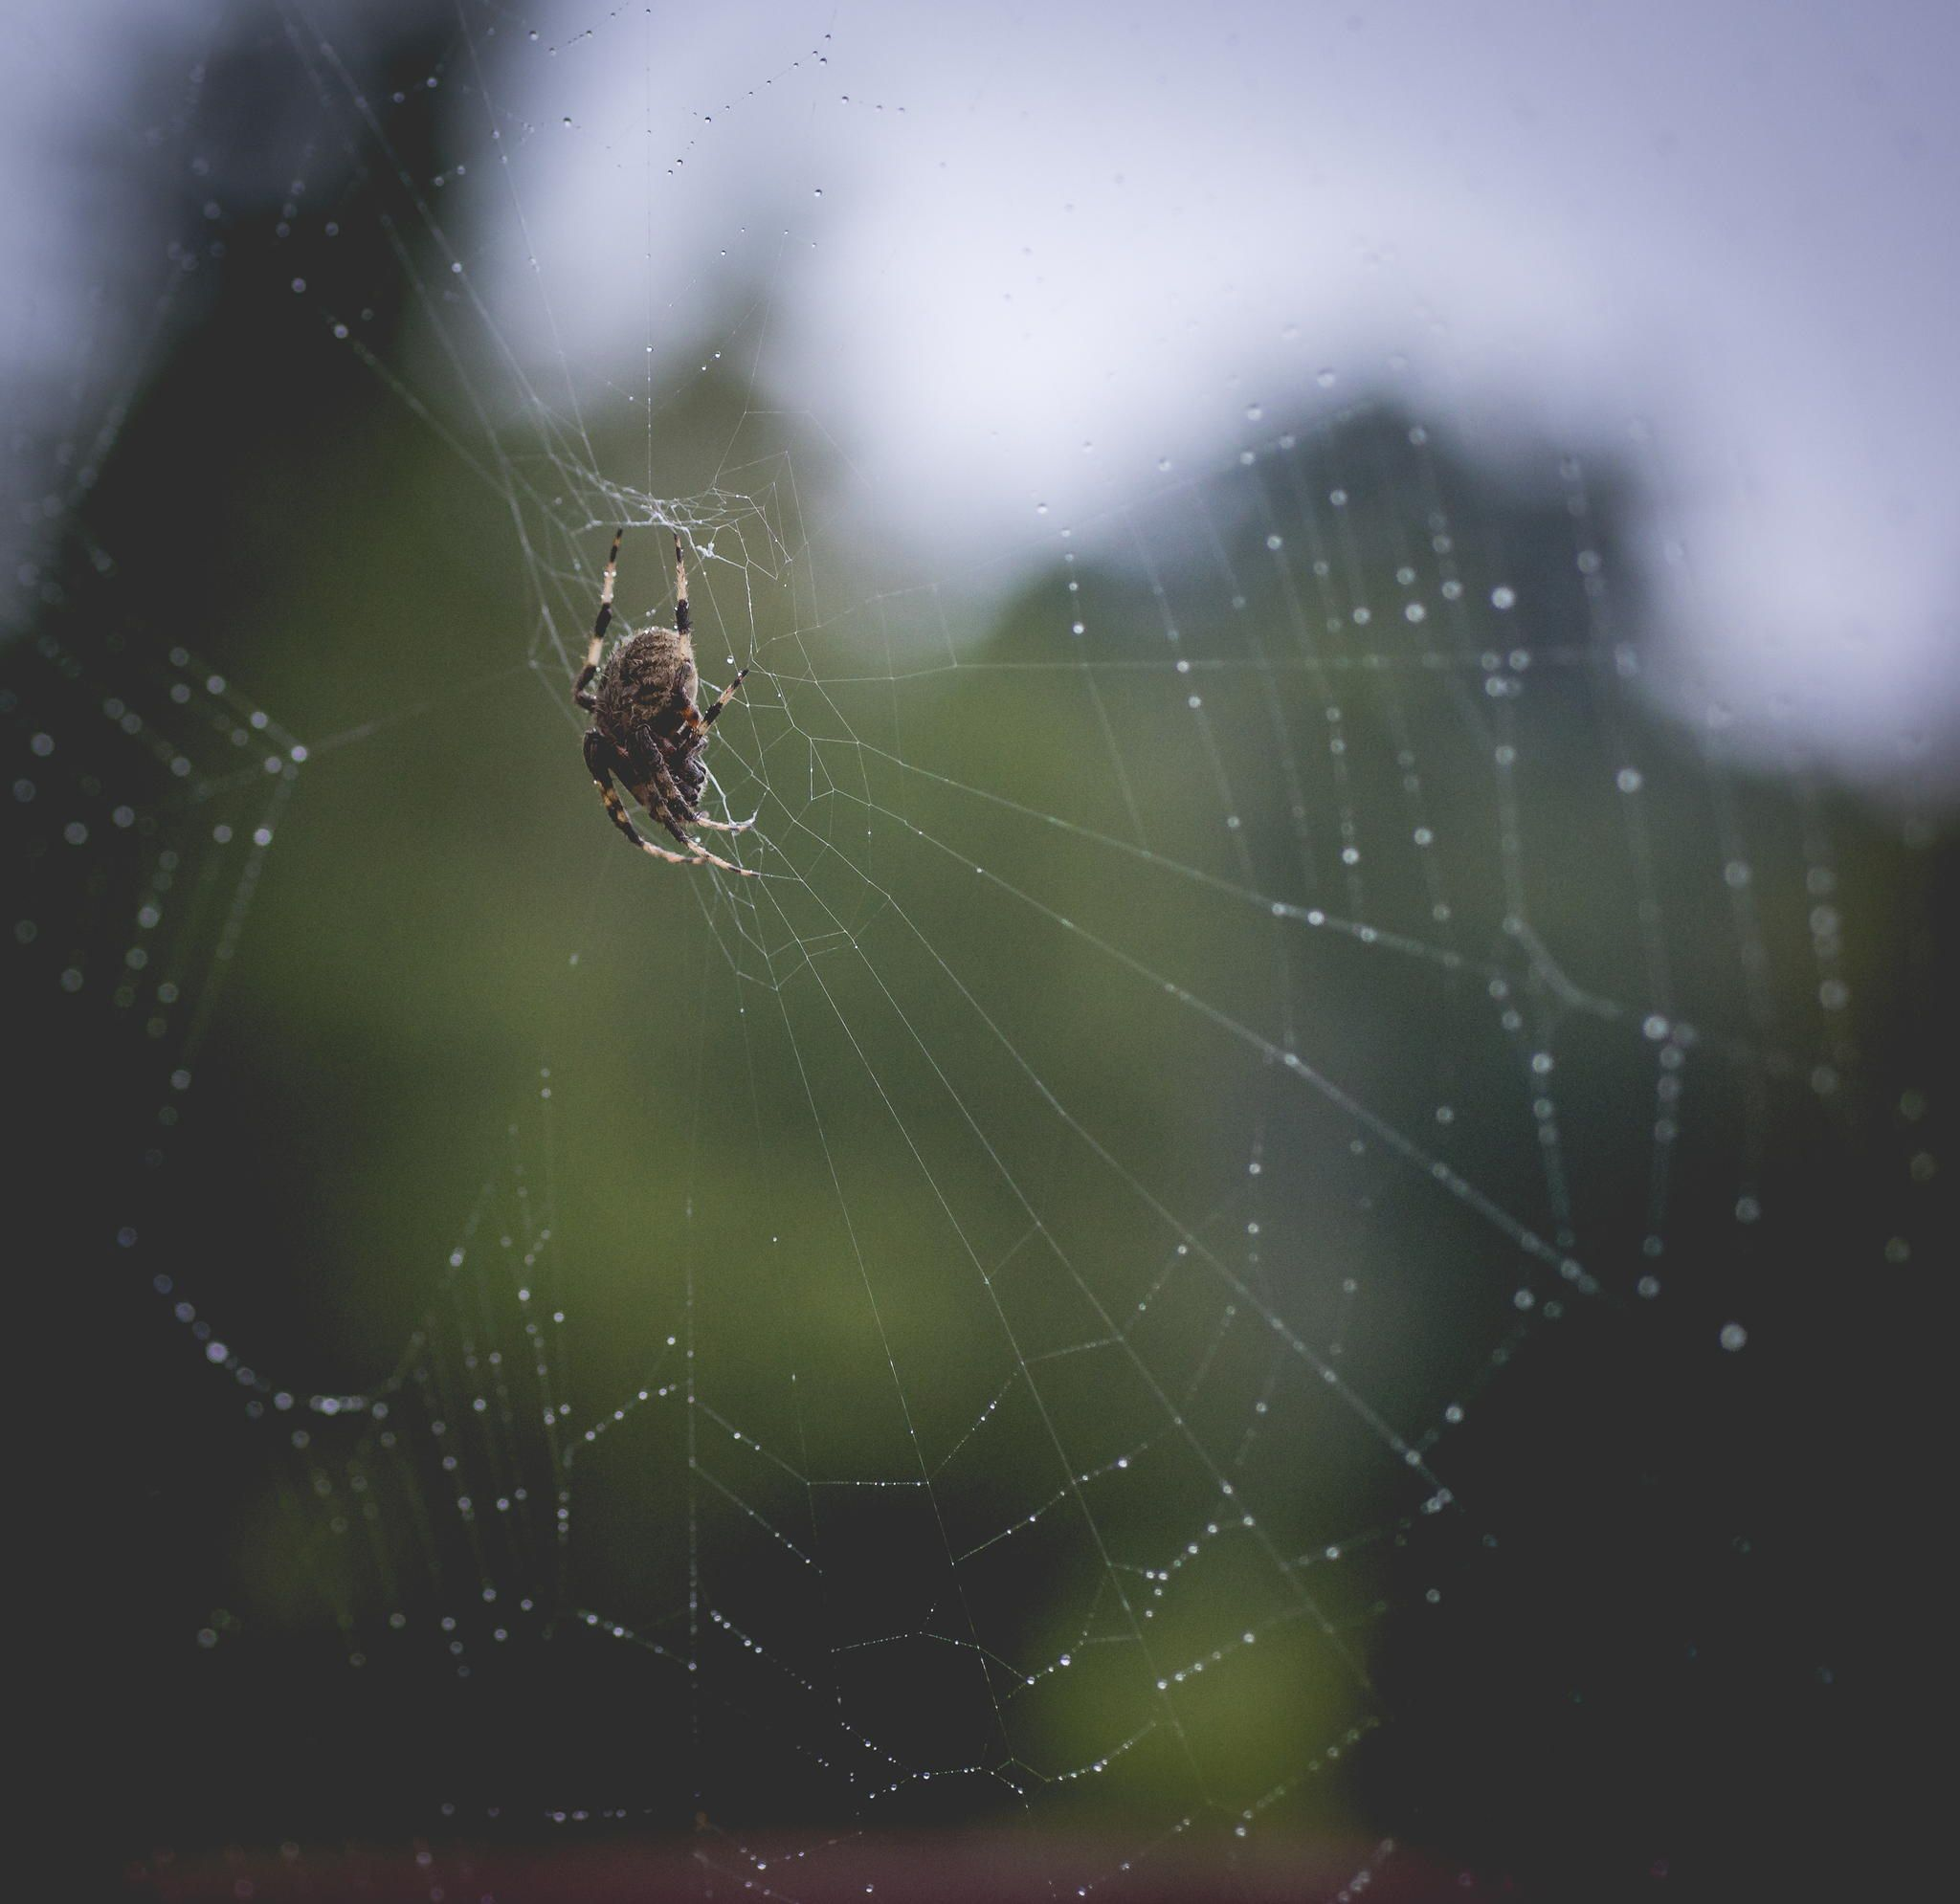 Charlotte - Spider repairing web covered in dew drops